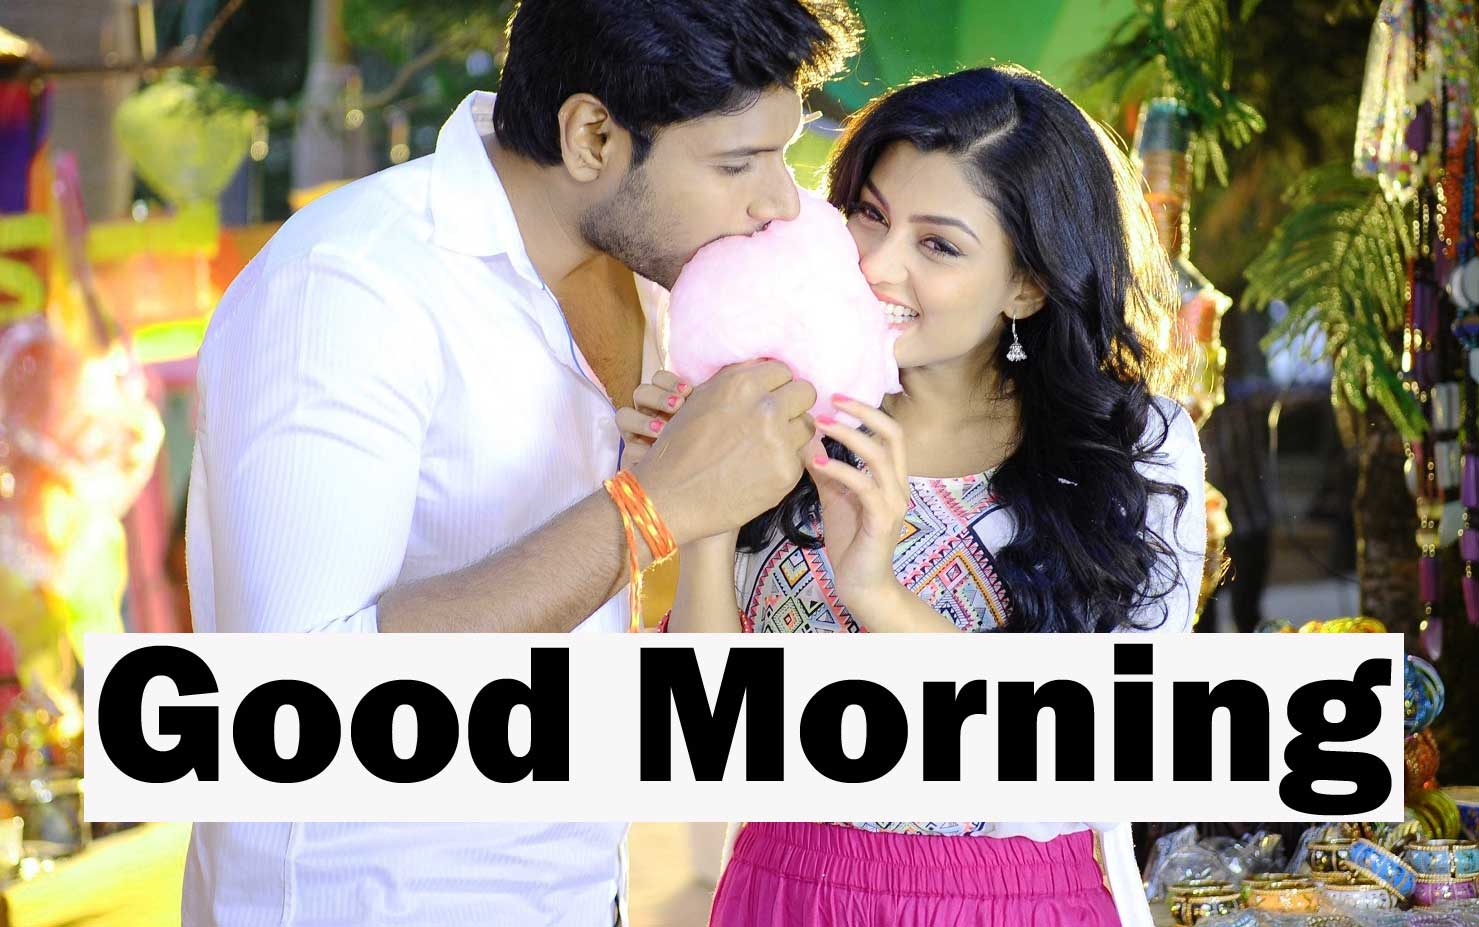 Romantic Love Couple Good Morning 15